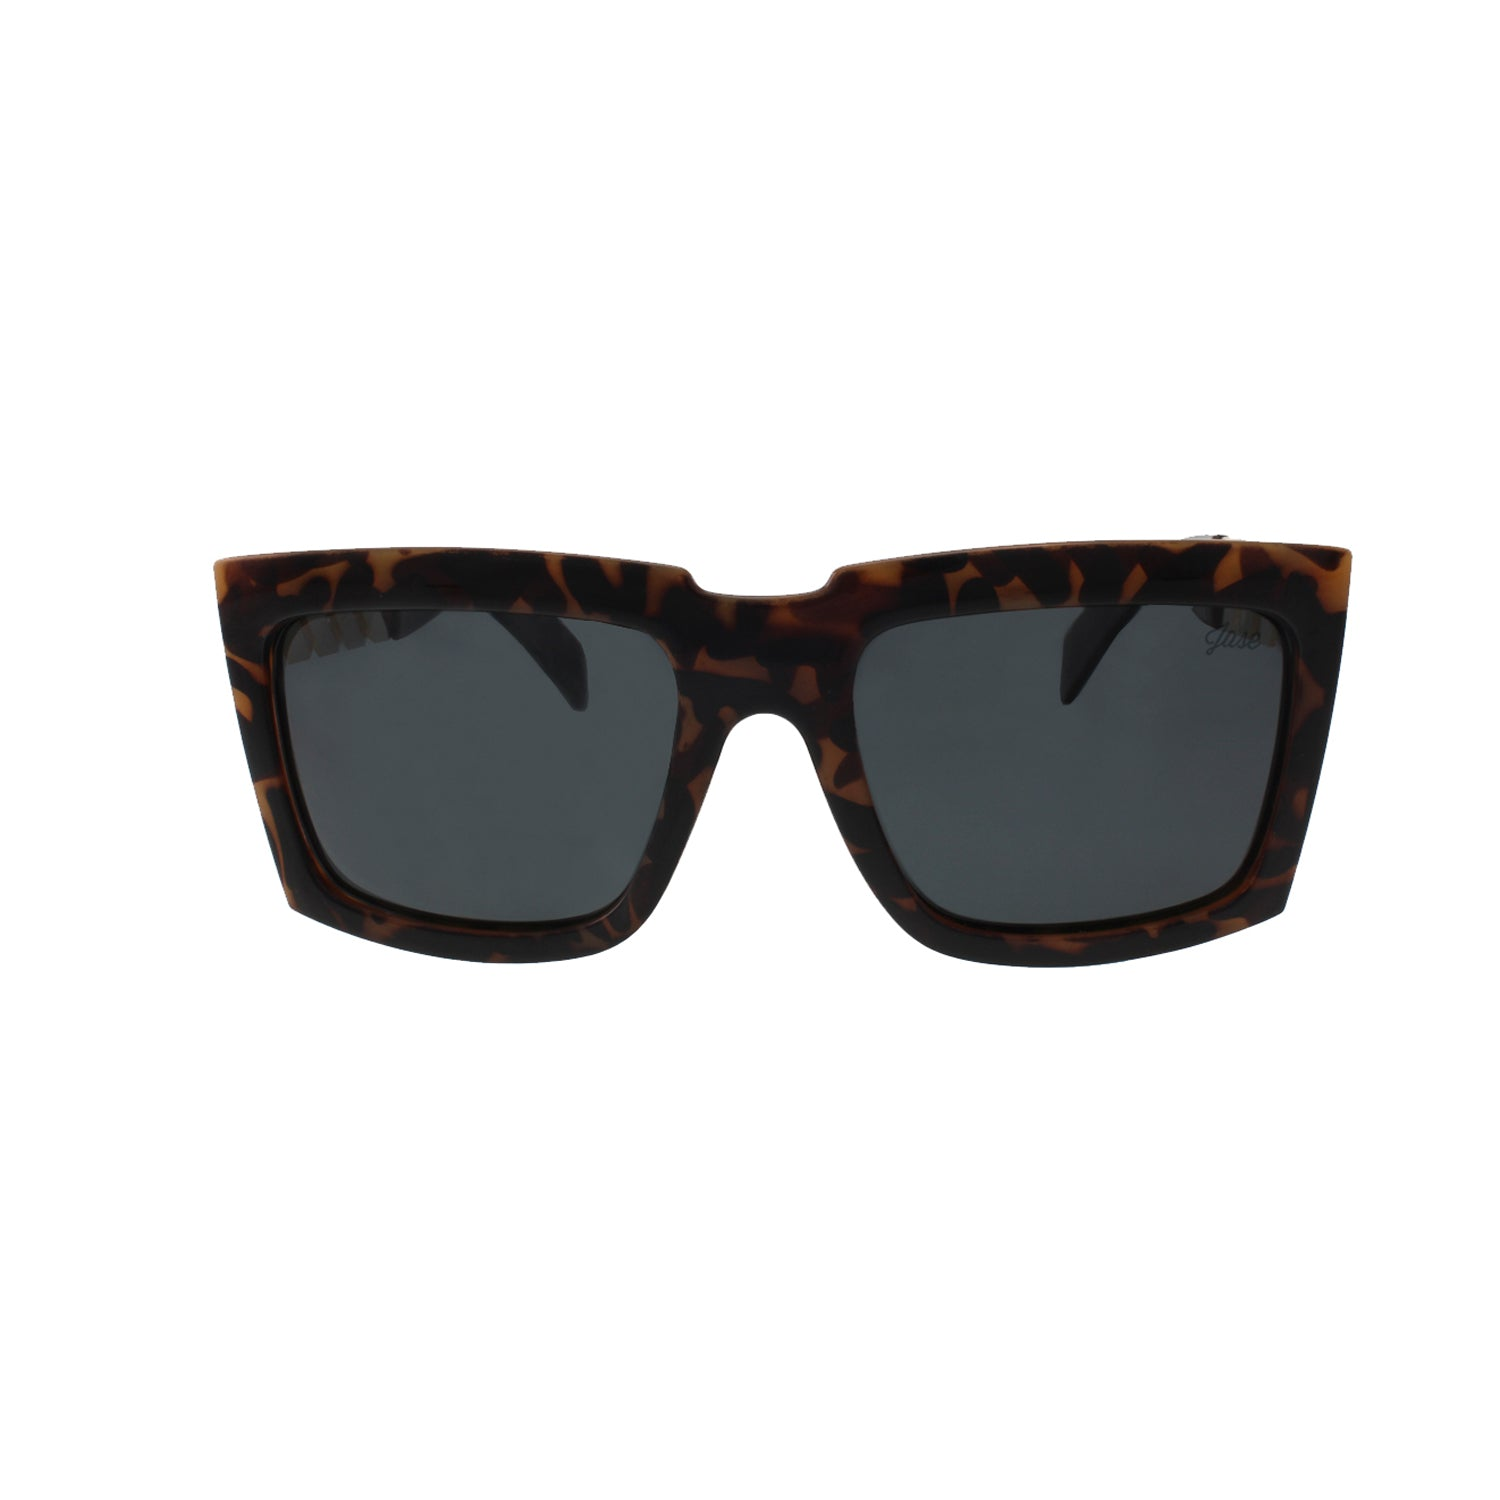 Jase New York Casero Sunglasses in Havana